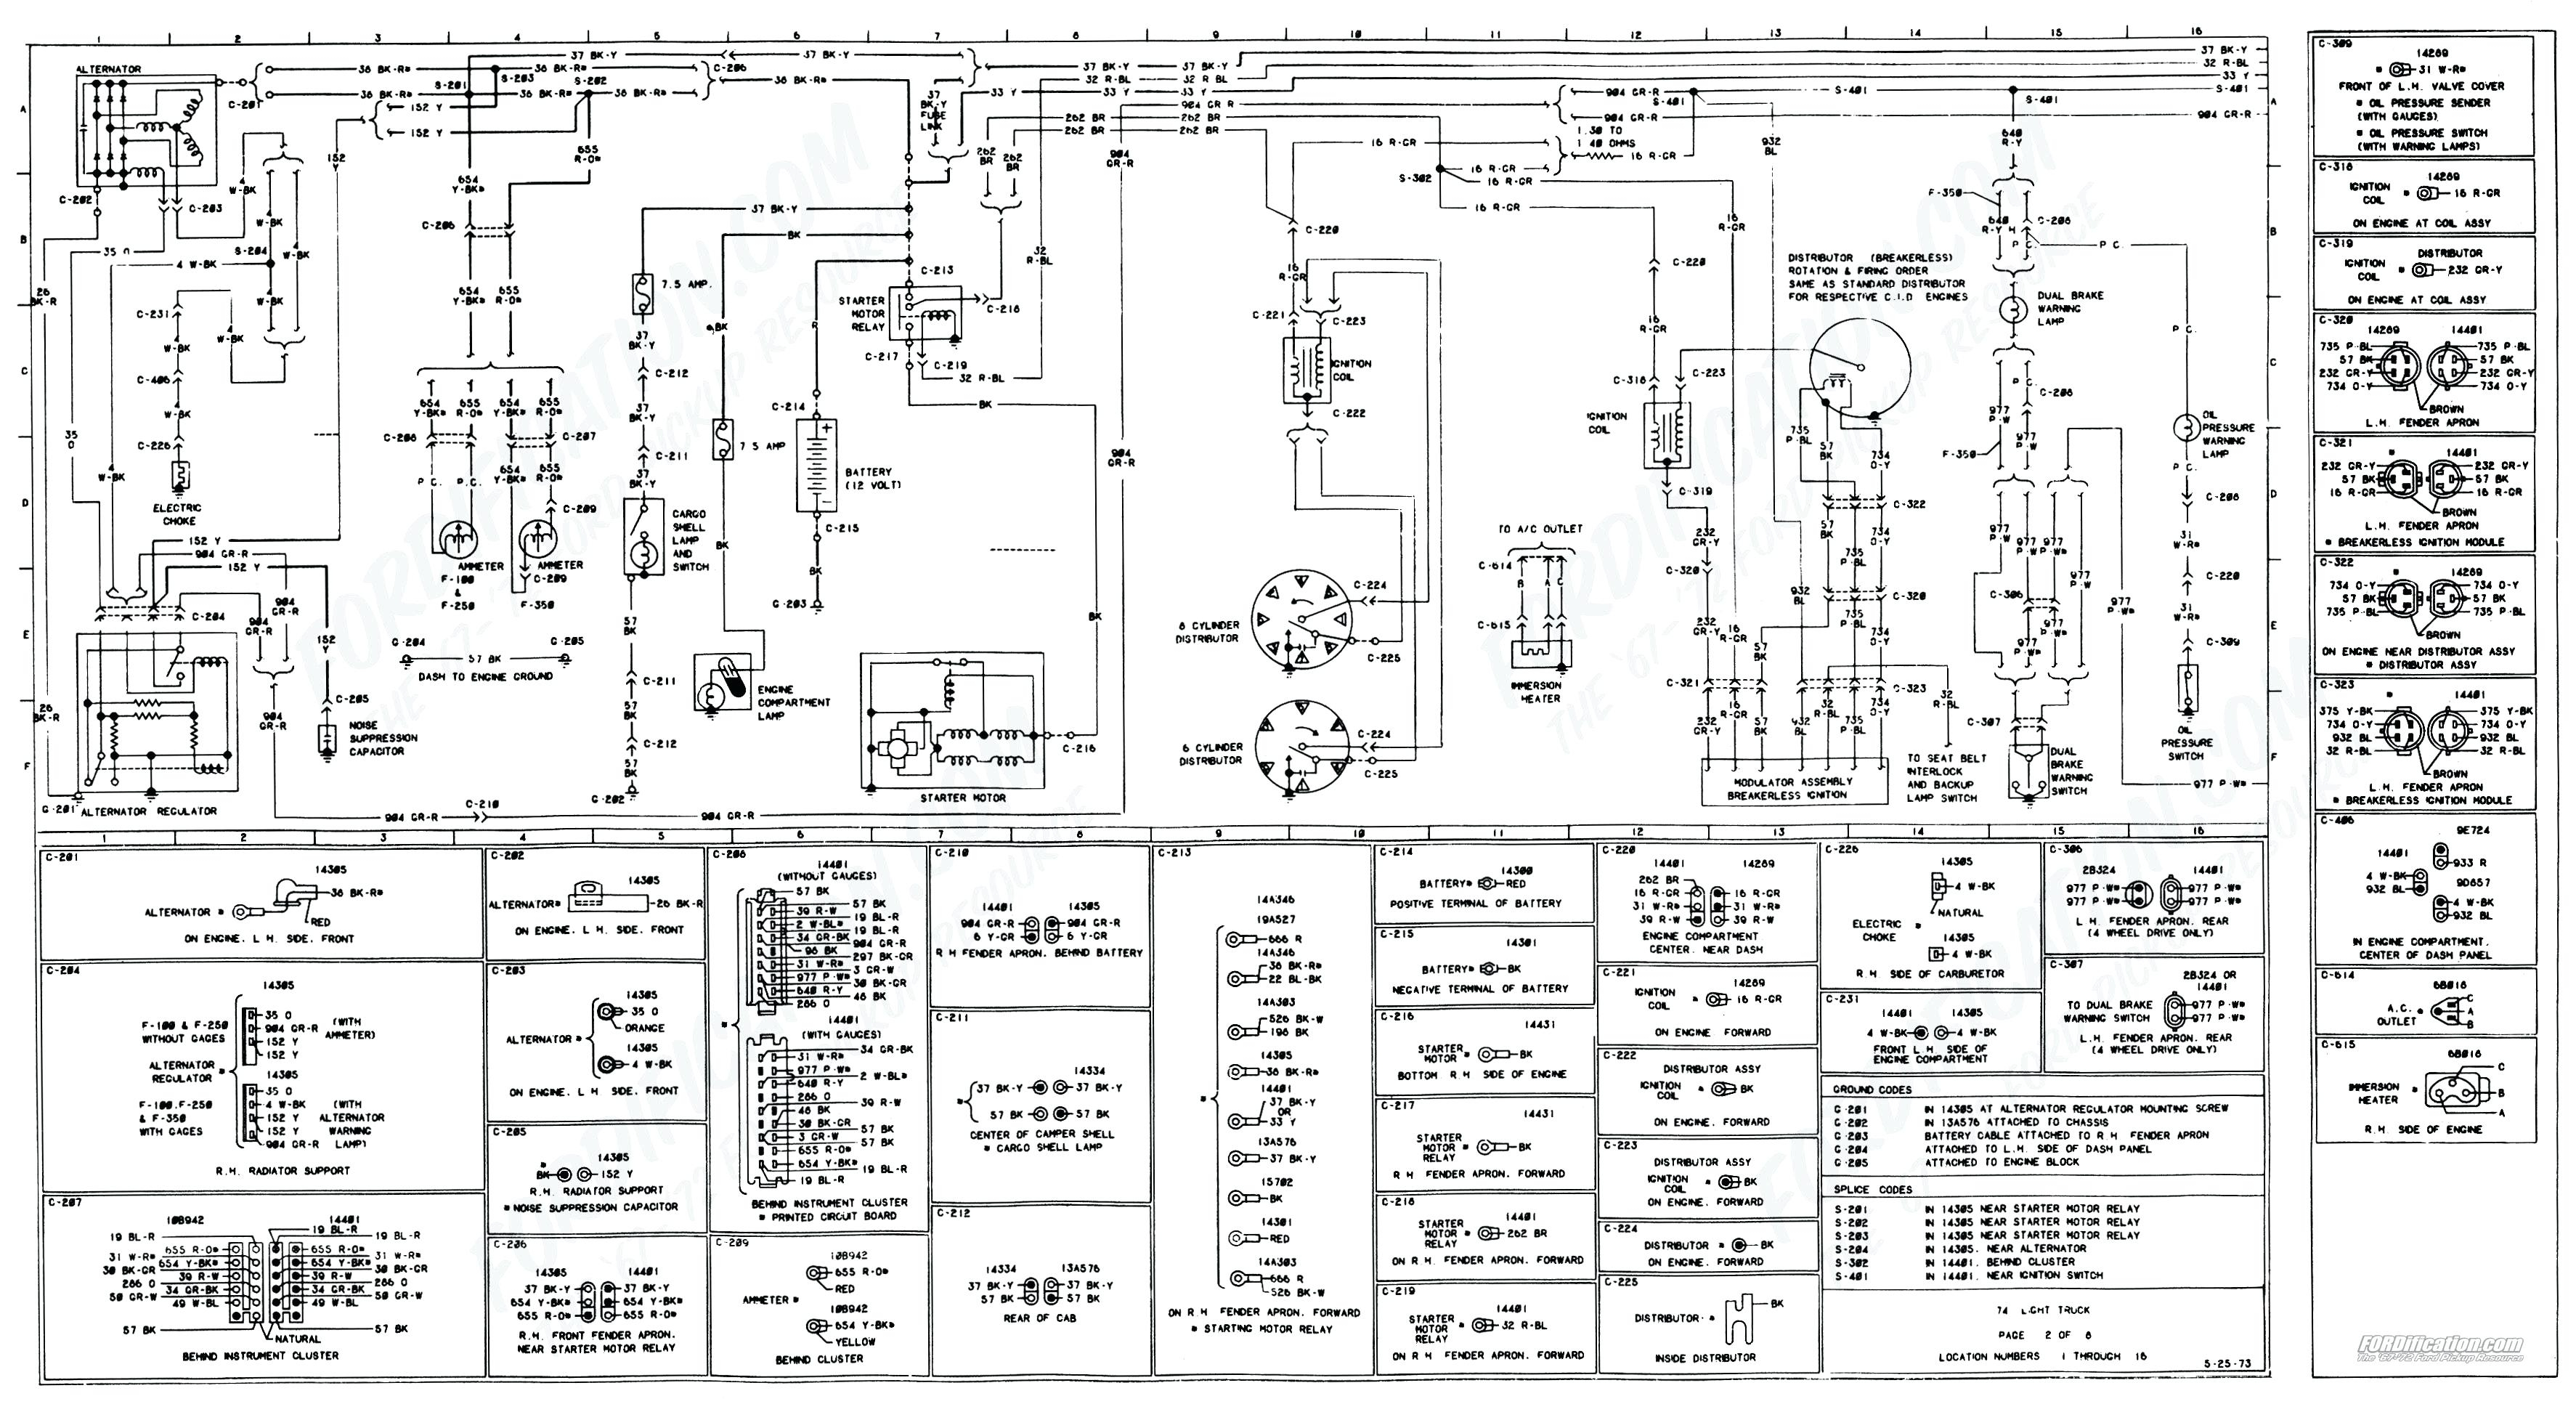 Ford F750 Wiring Schematic - wiring diagram sockets-page -  sockets-page.albergoinsicilia.it | 2015 Ford F650 Wiring Diagram |  | sockets-page.albergoinsicilia.it